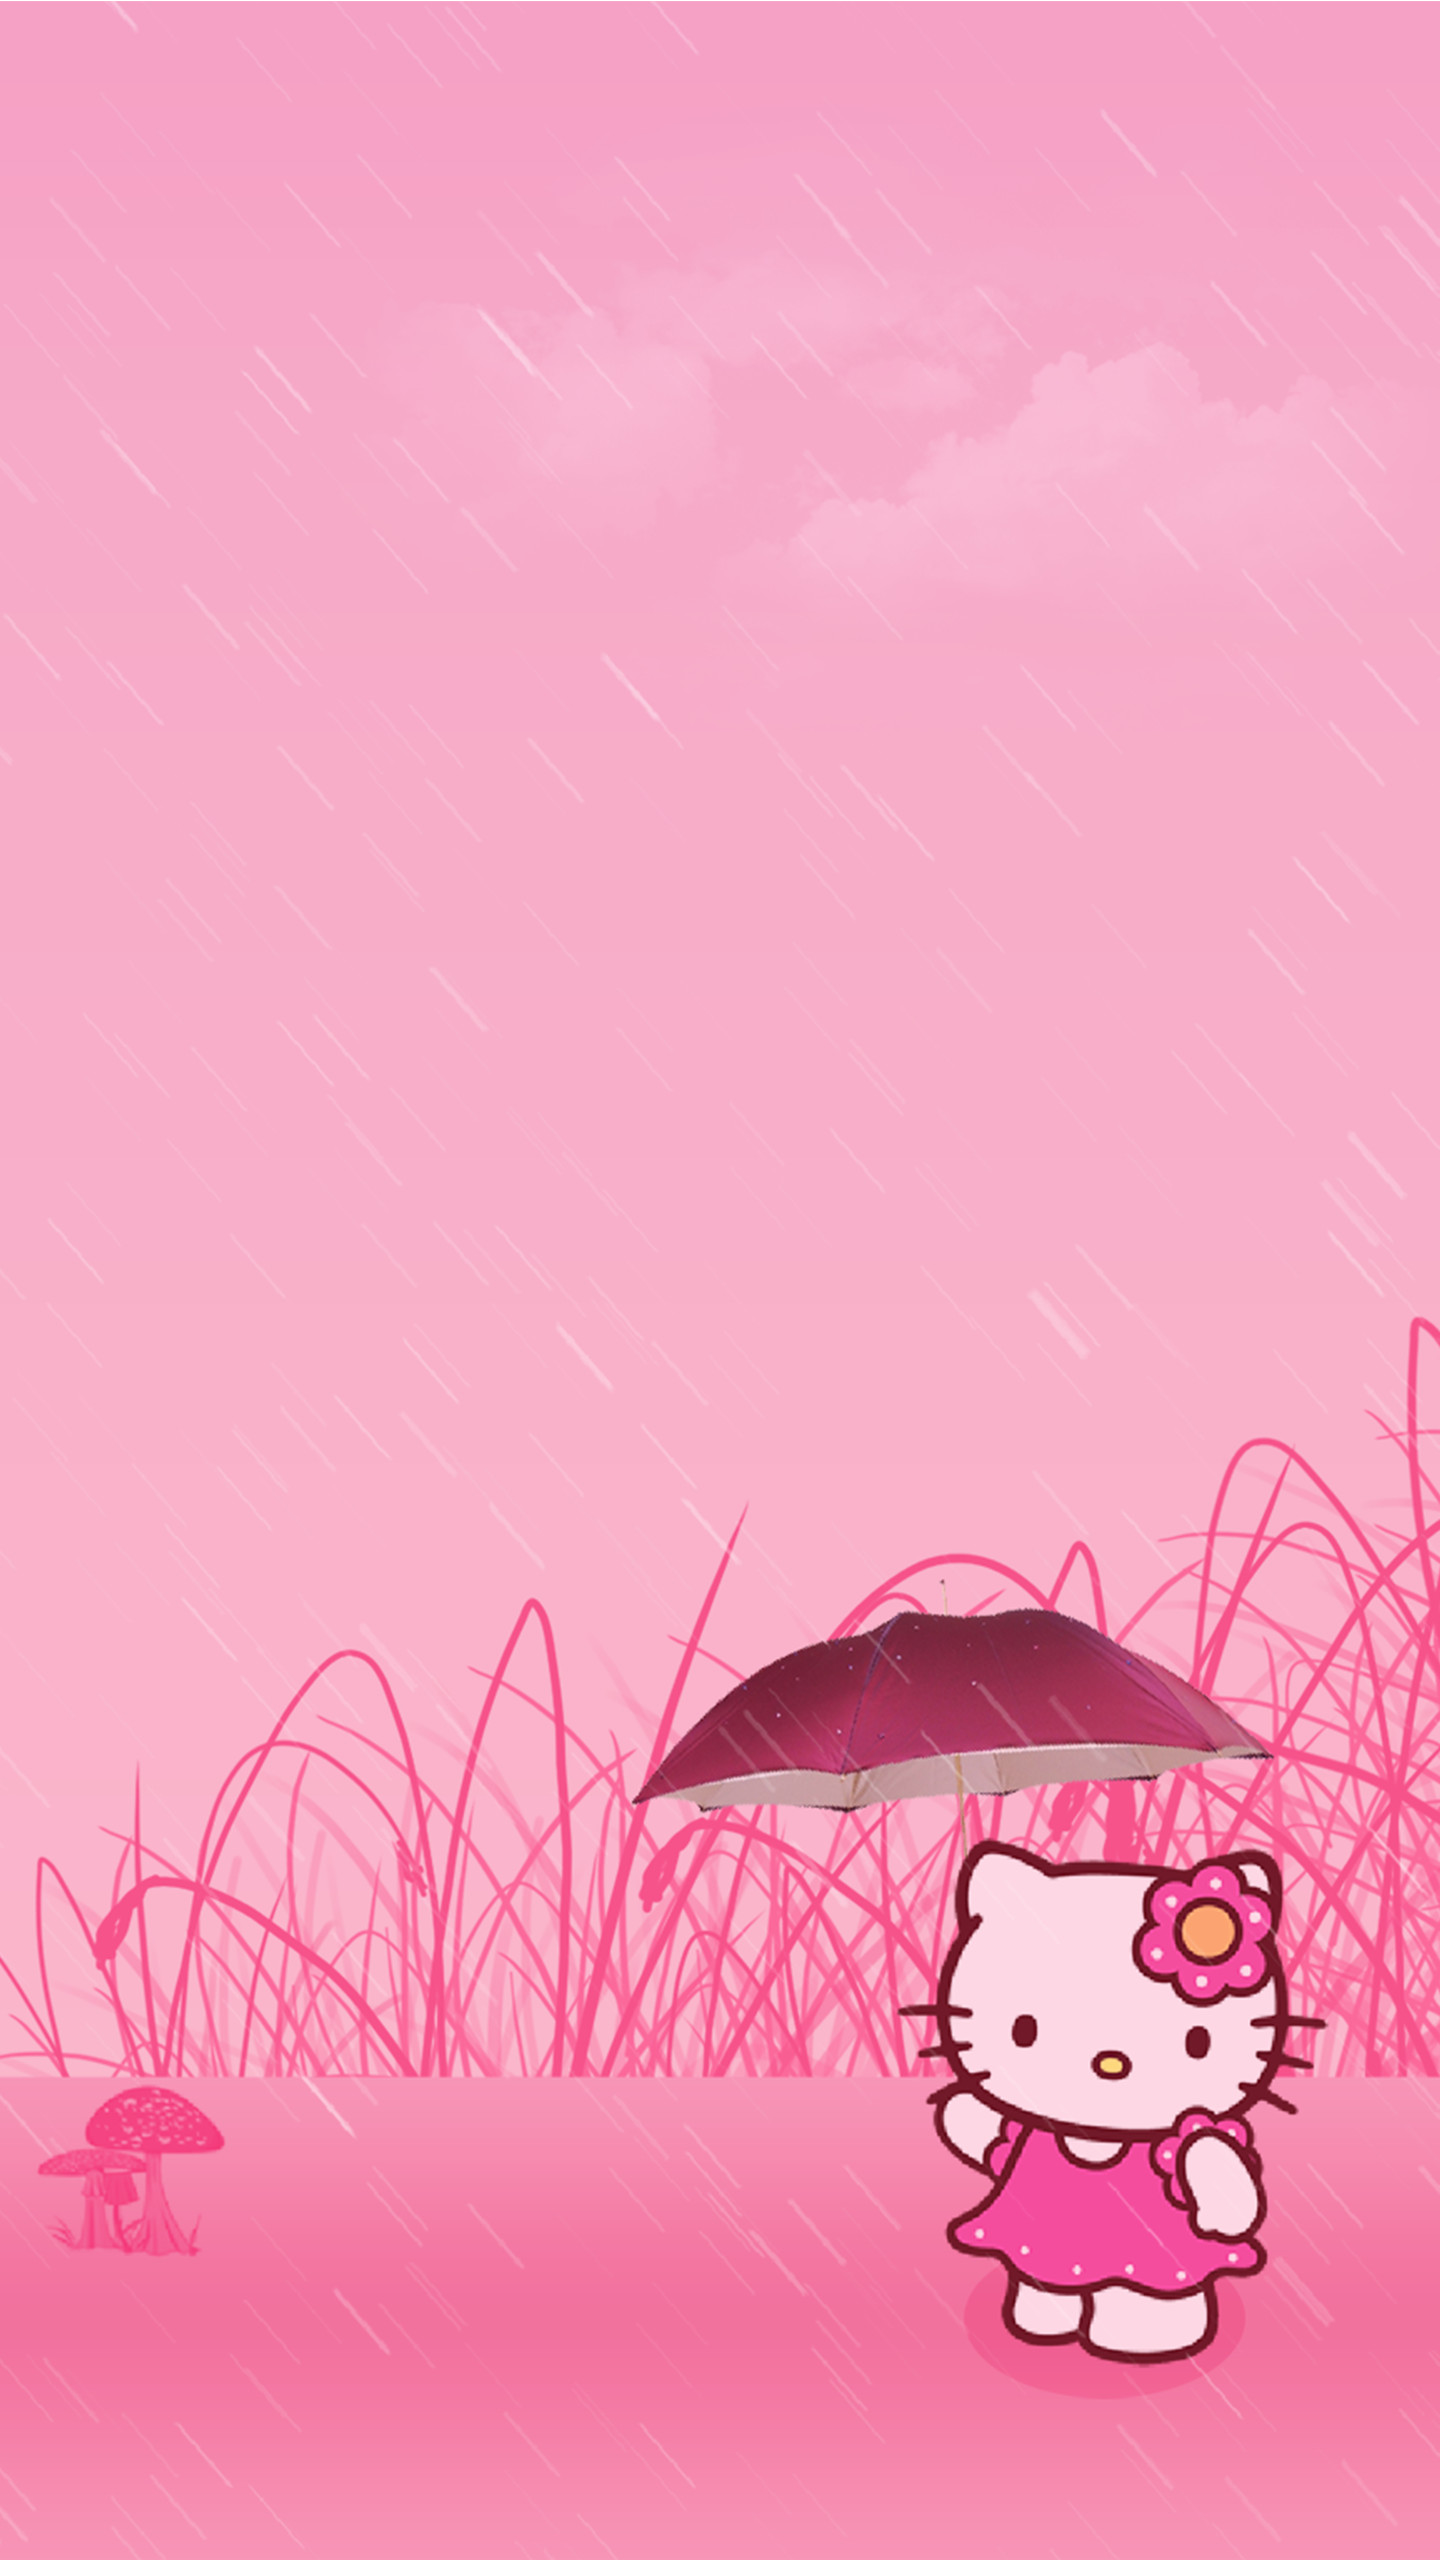 Hello Kitty Wallpaper for iPhone 72 images 1440x2560